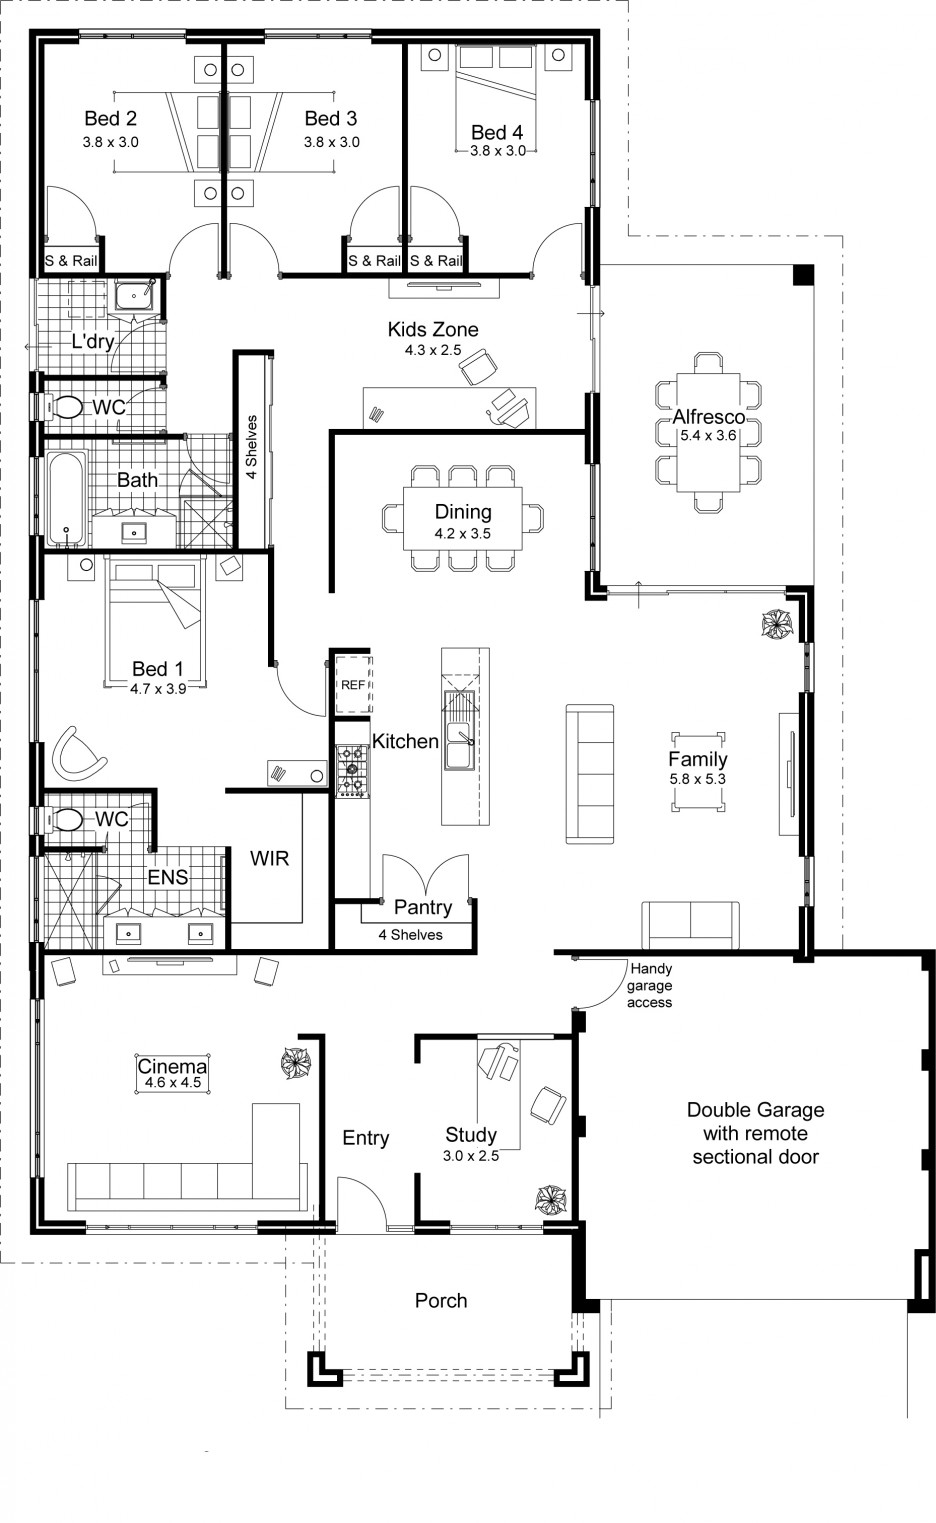 Architectural Floor Plans For Houses Viewing Gallery